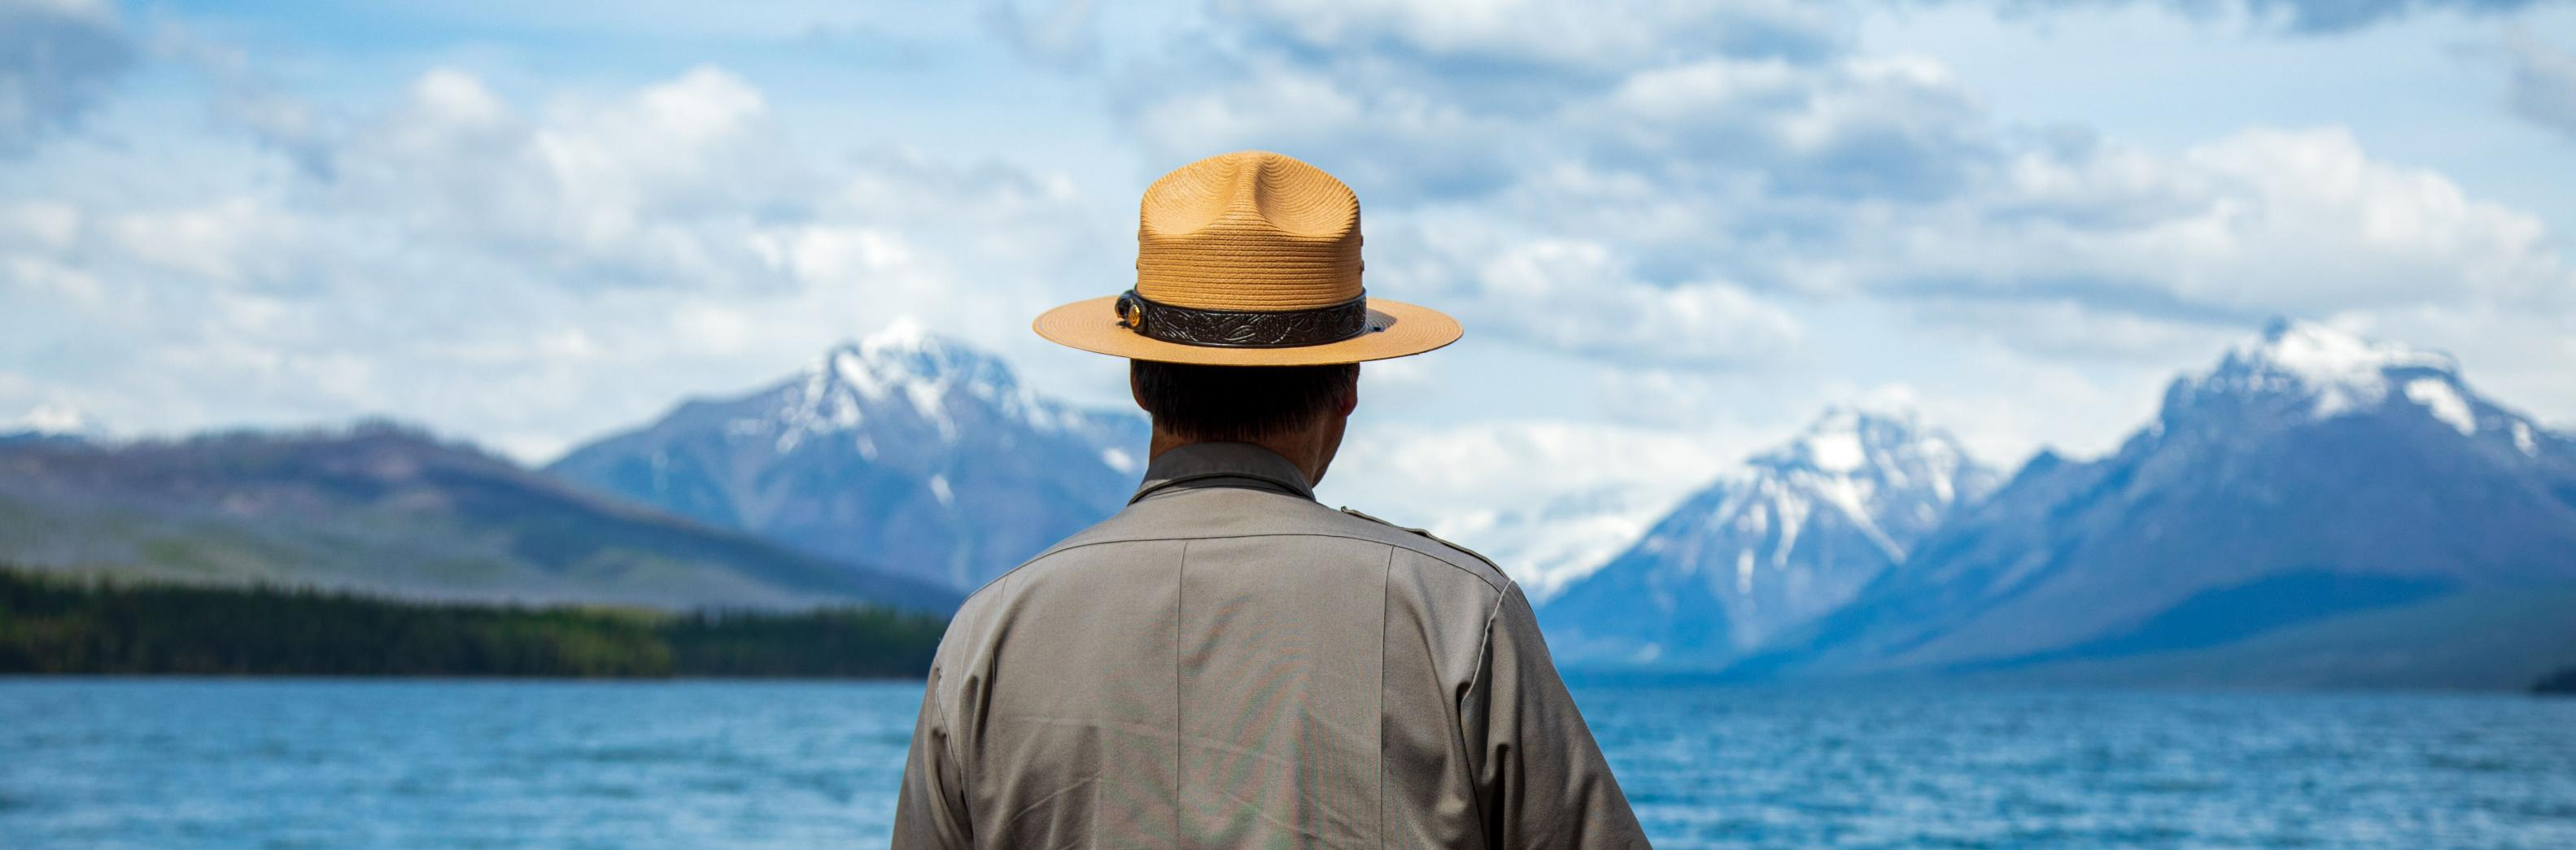 A man wearing a national park ranger hat looks out over a lake with snow-capped mountains in the background.